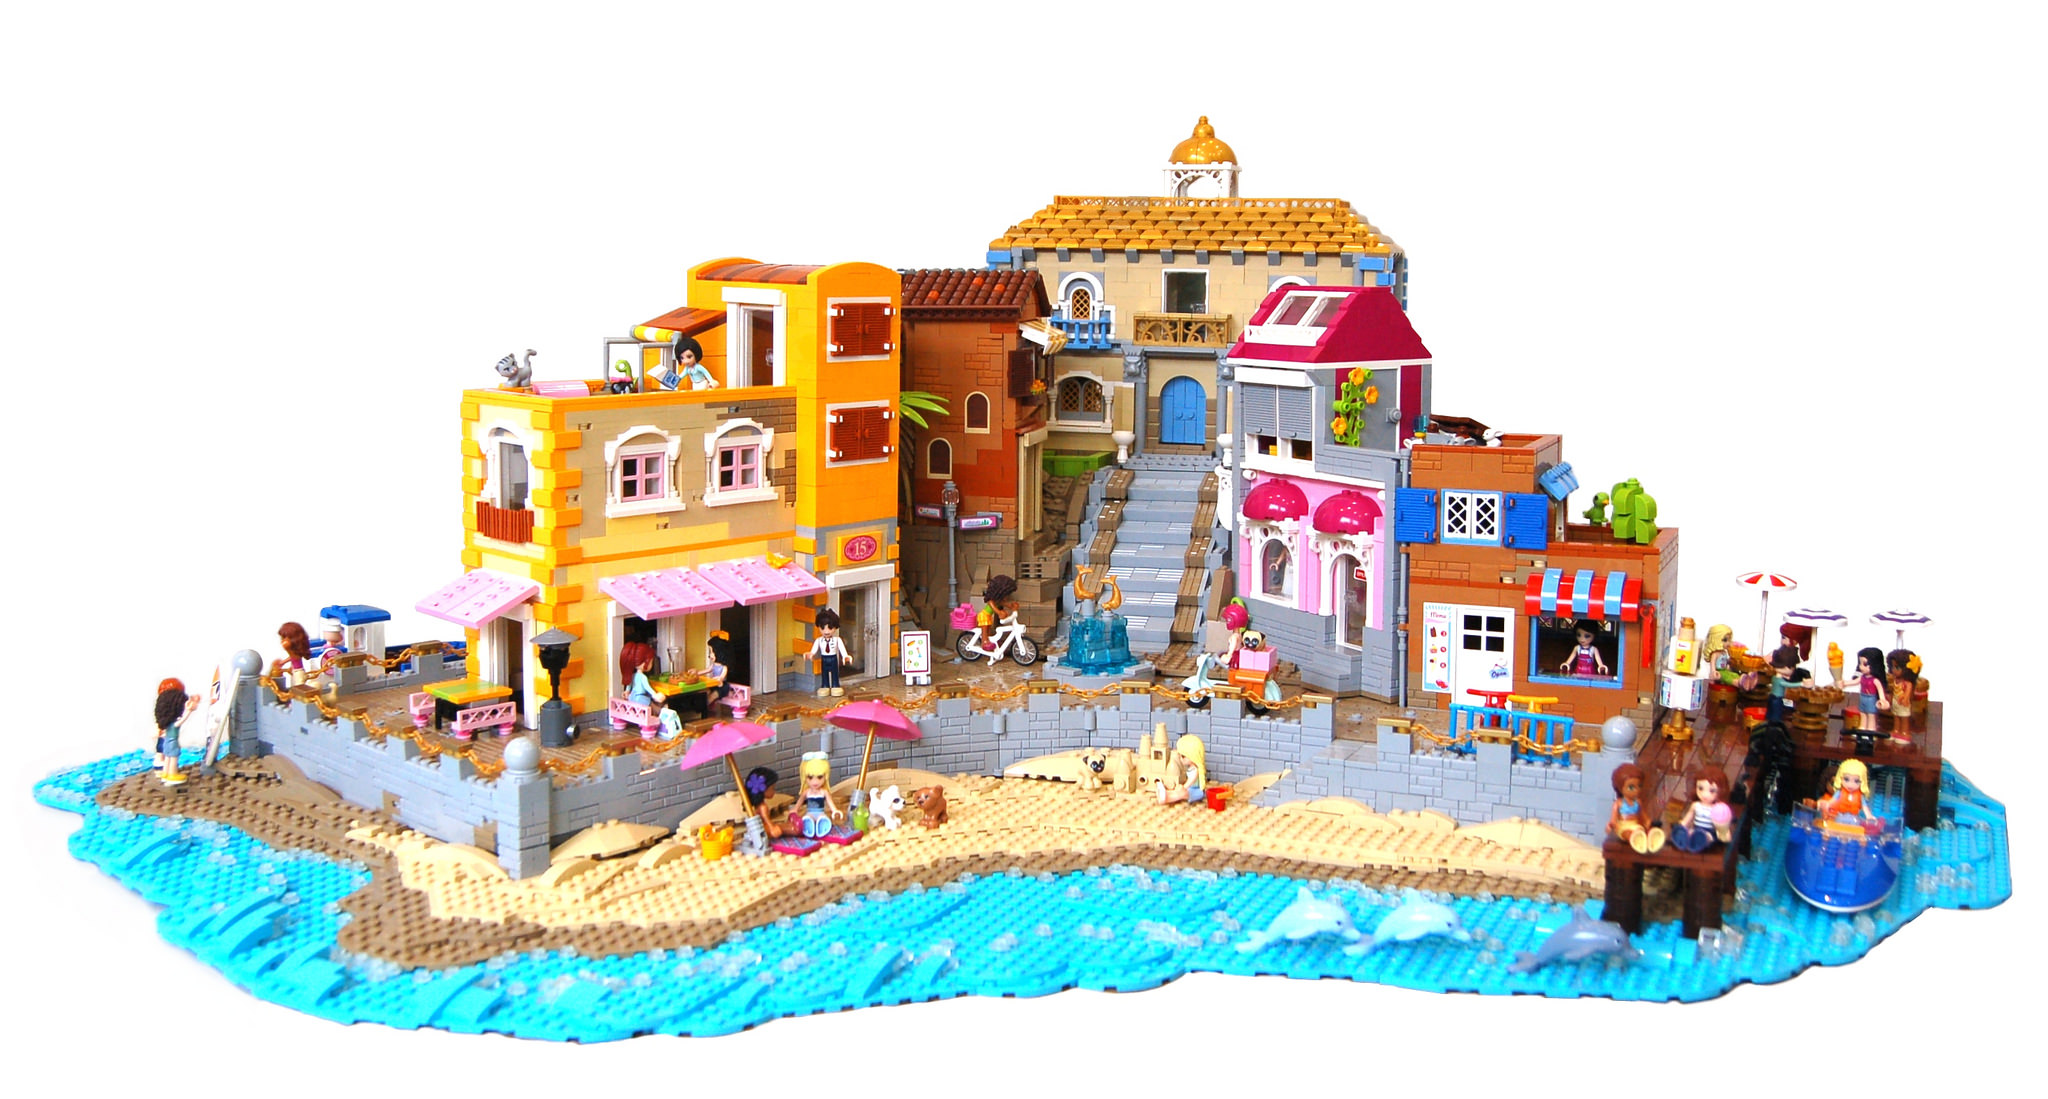 Lego Friends On Vacation At The Beach The Brothers Brick The